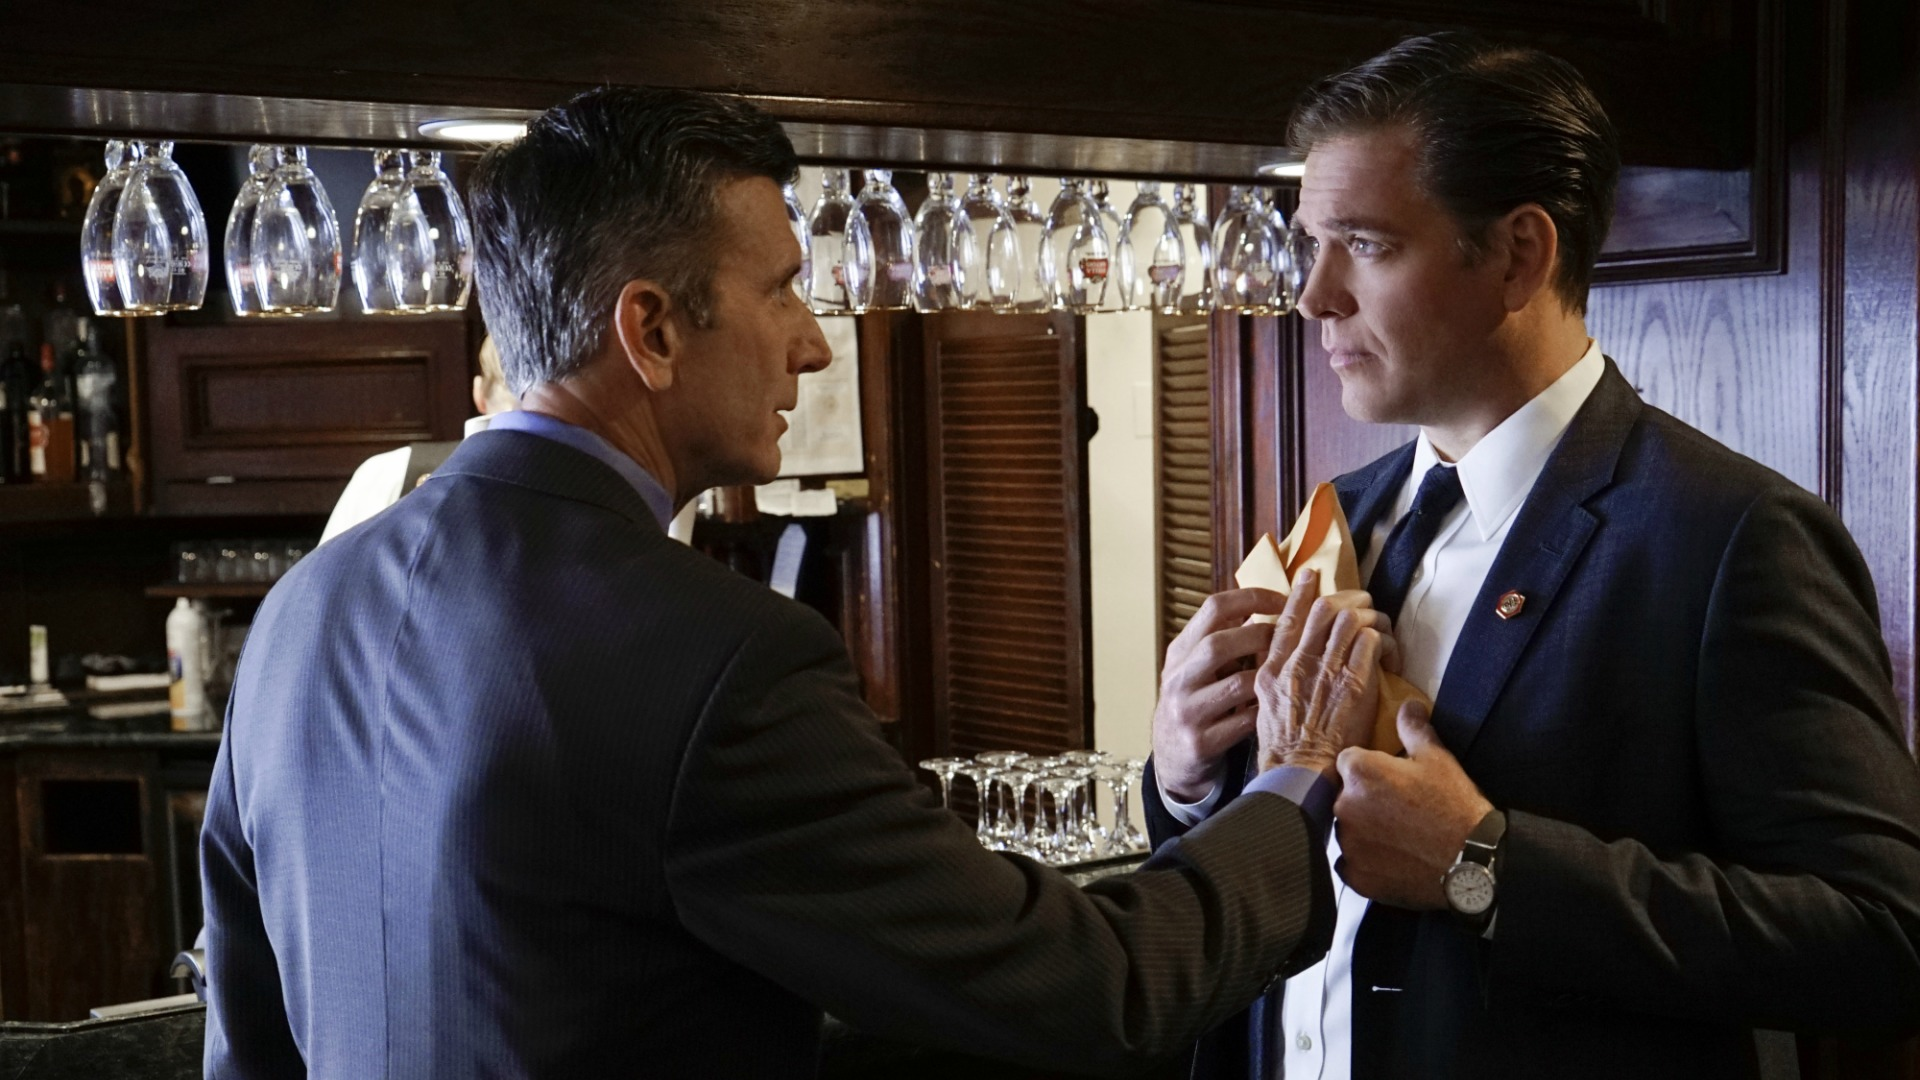 DiNozzo receives an unexpected gift.